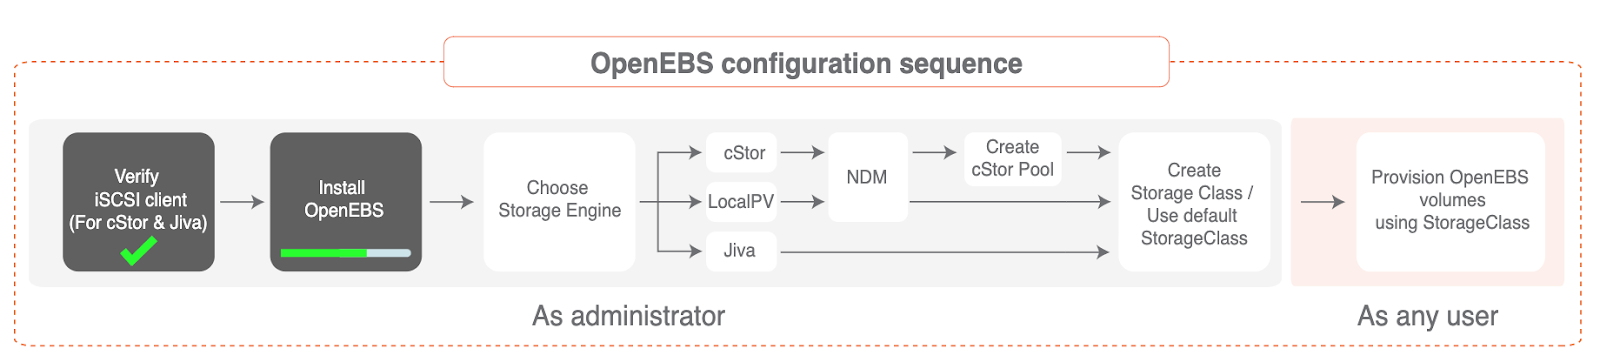 OpenEBS configuration sequence